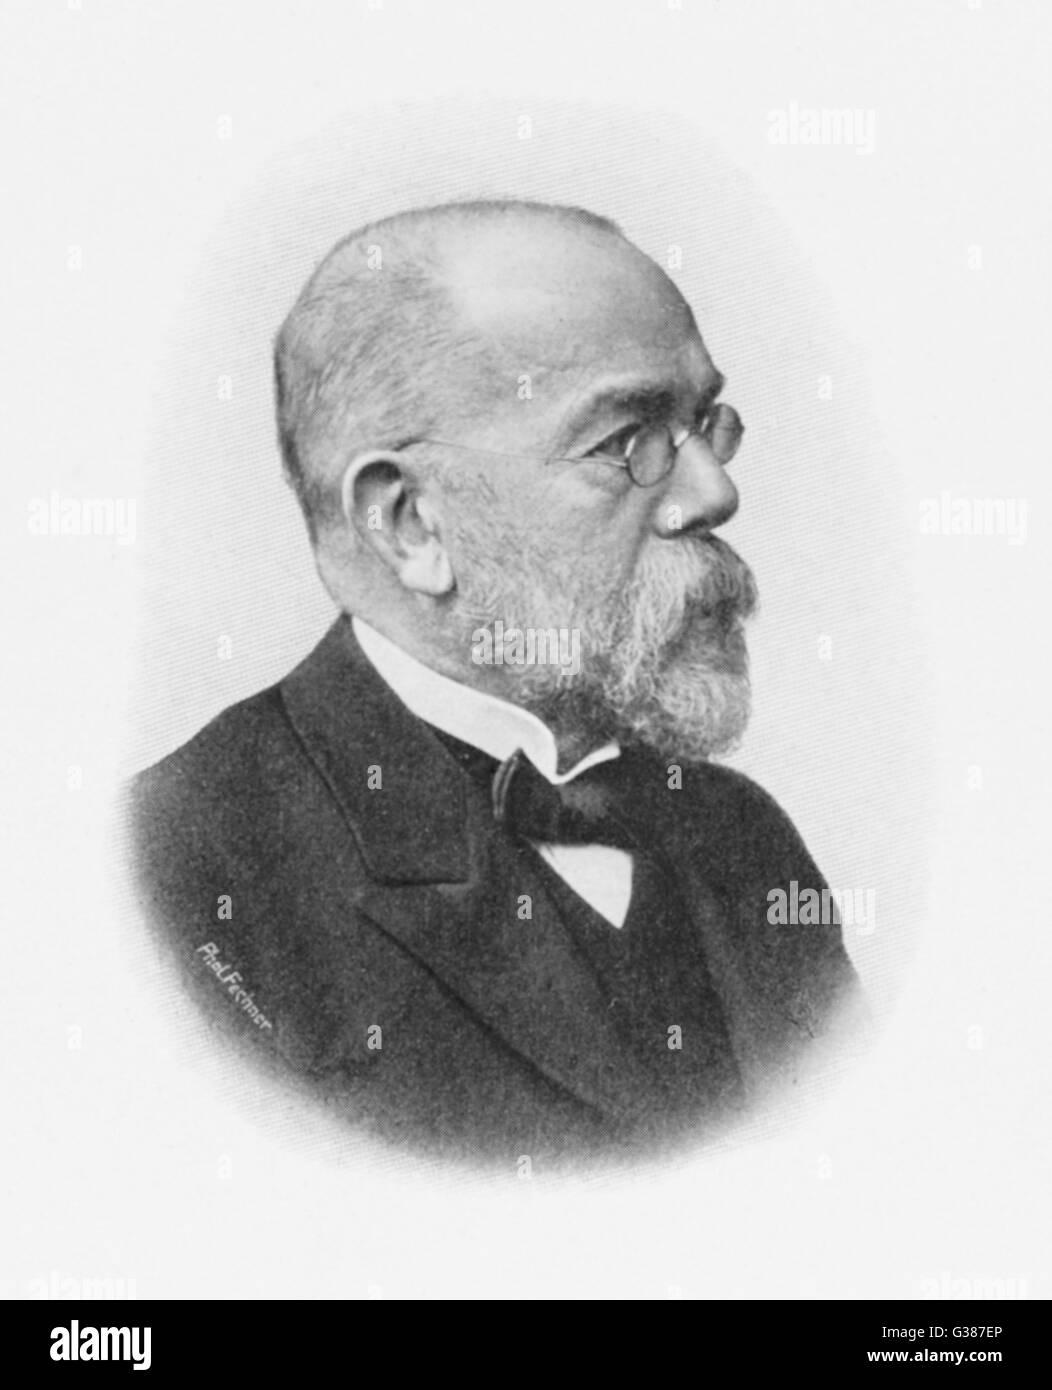 ROBERT KOCH  German bacteriologist        Date: 1843 - 1910 - Stock Image